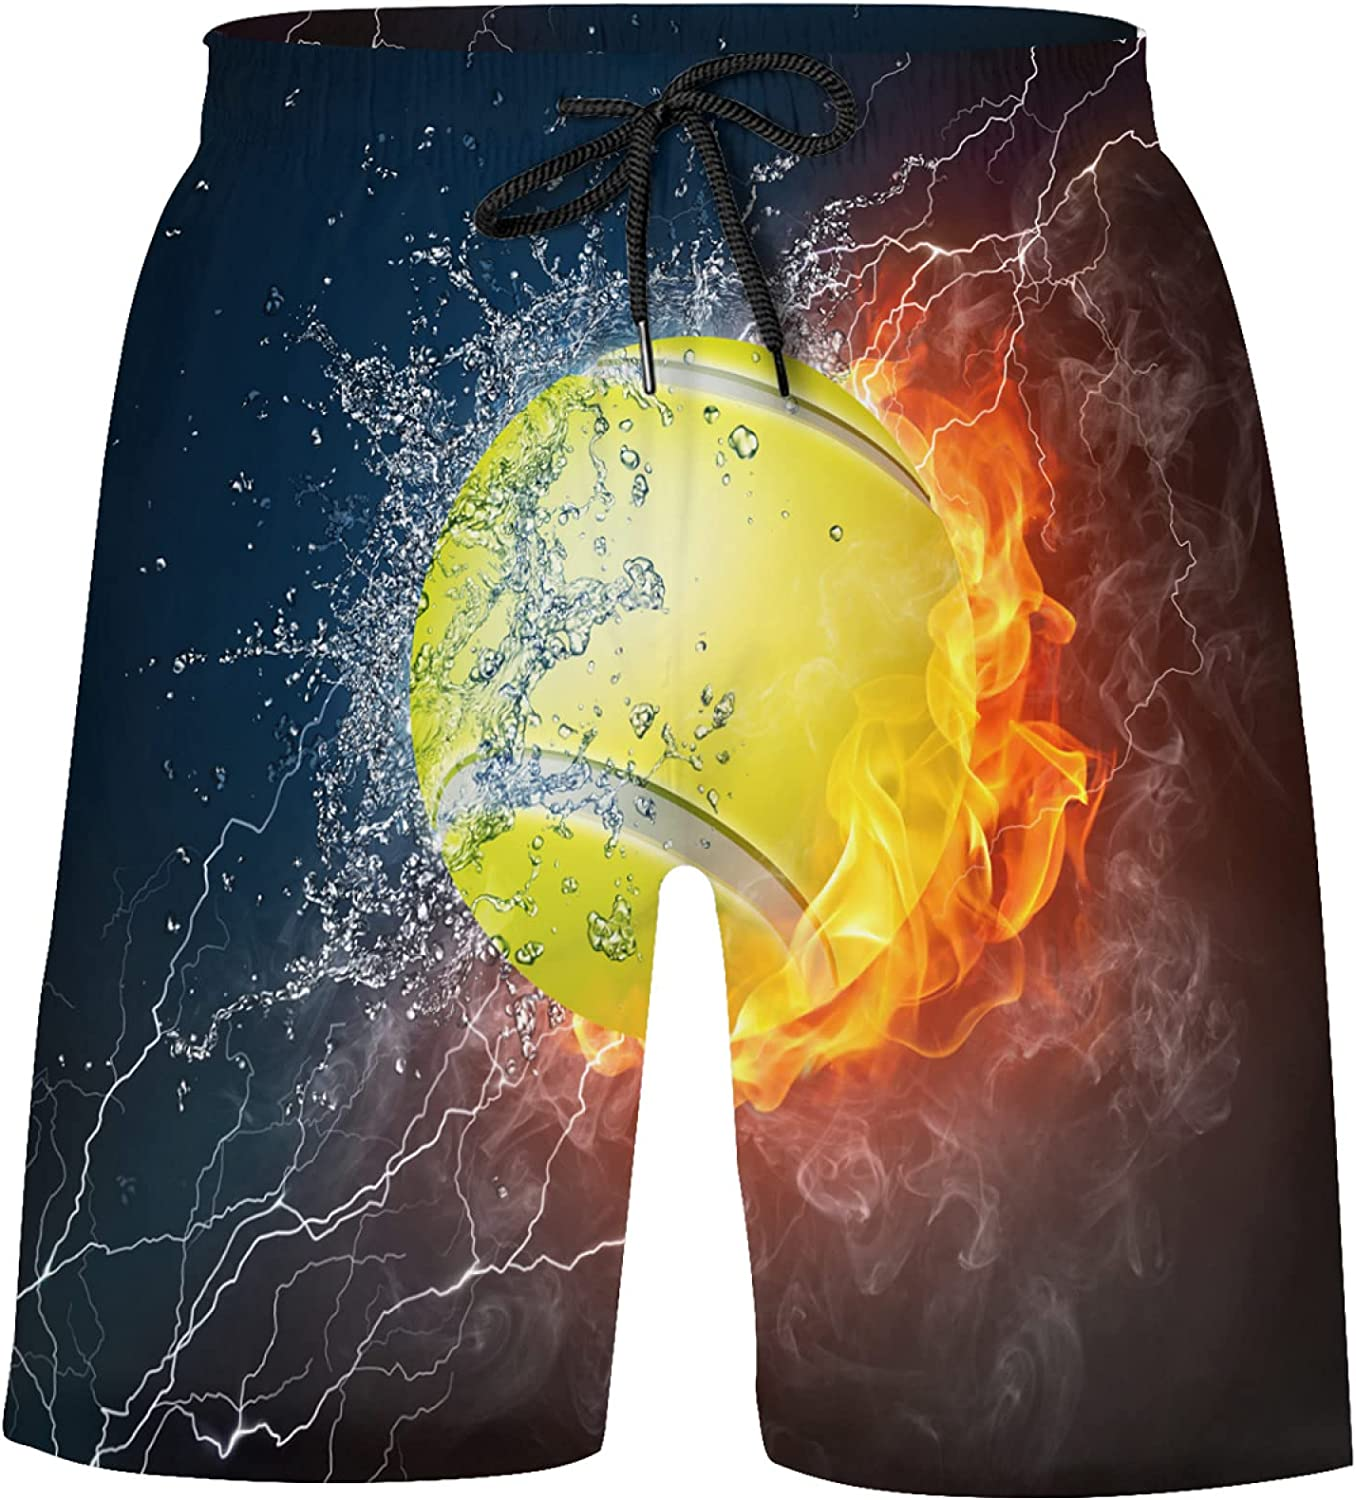 Tennis Ball in Fire and Water On Black Boys Quick Dry Beach Board Shorts Kids Swim T